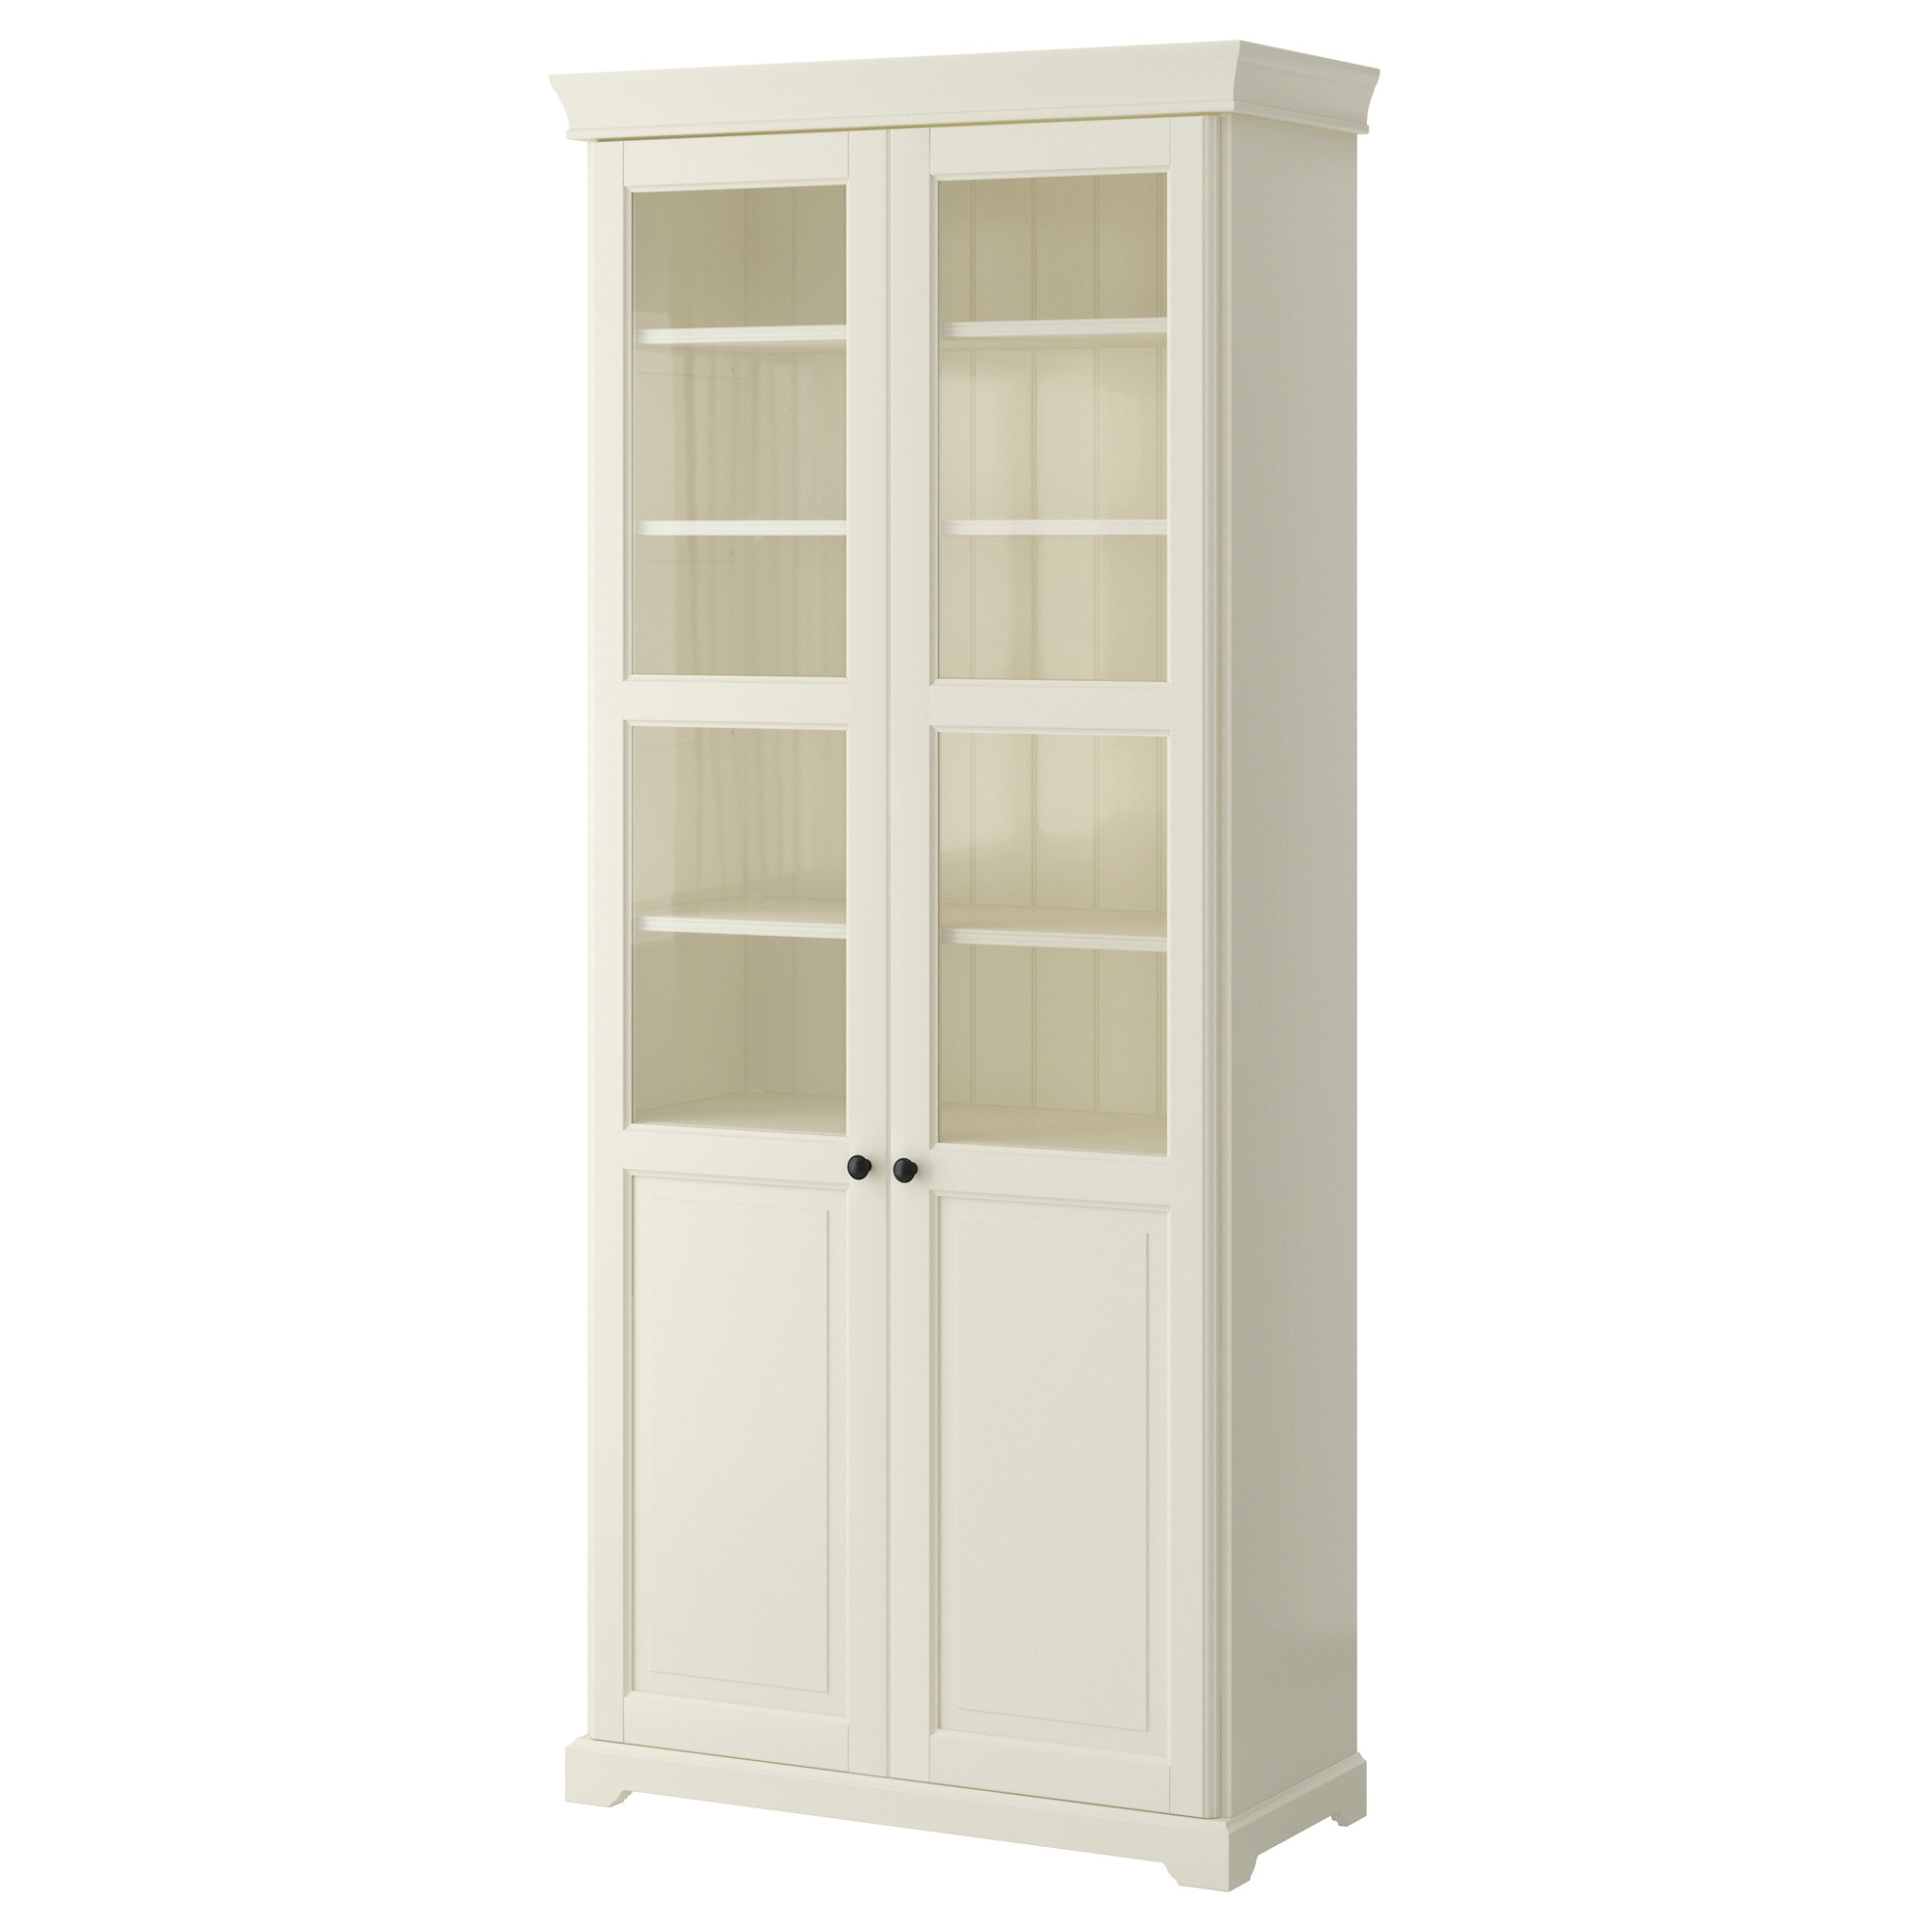 Genial LIATORP Bookcase With Glass Doors   White   IKEA